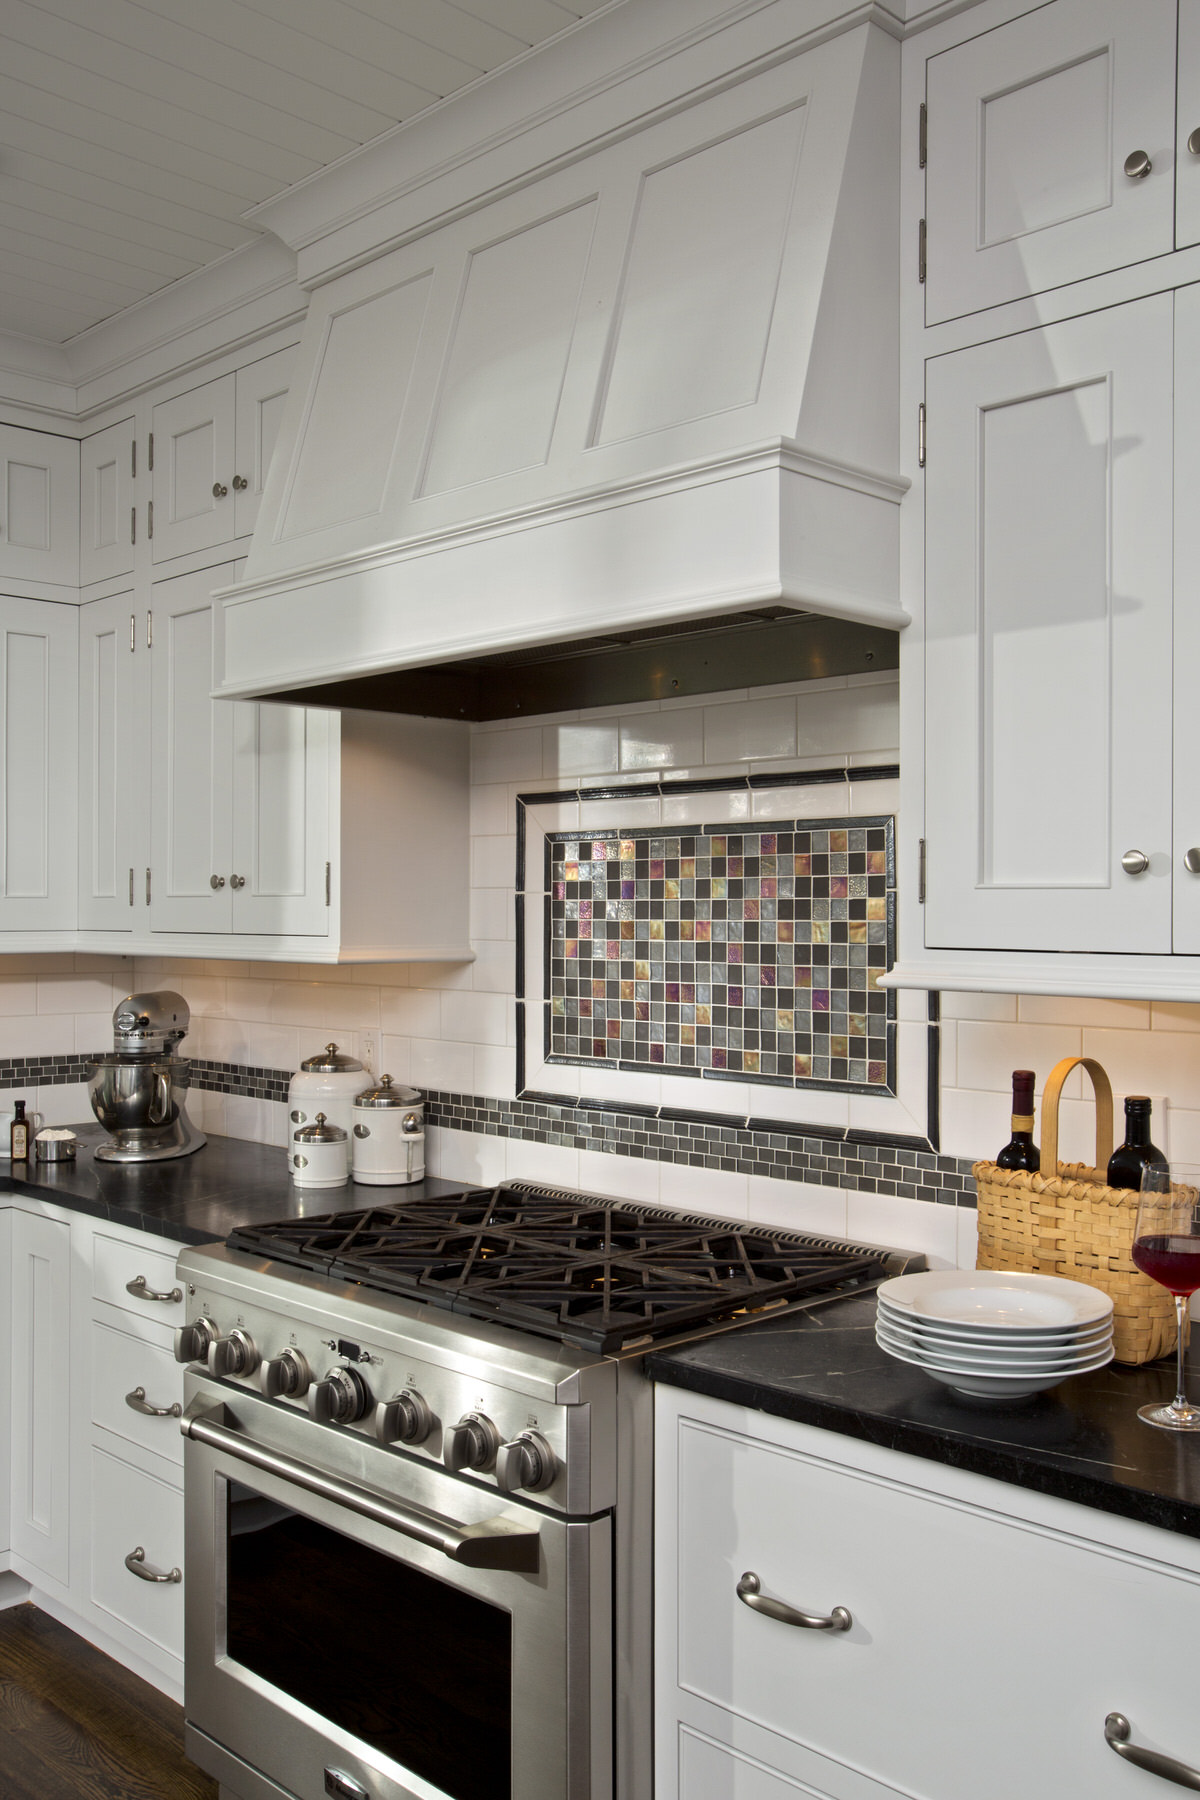 Once the literal hearth and center of the kitchen the range backsplash is always a ready place to make a statement.